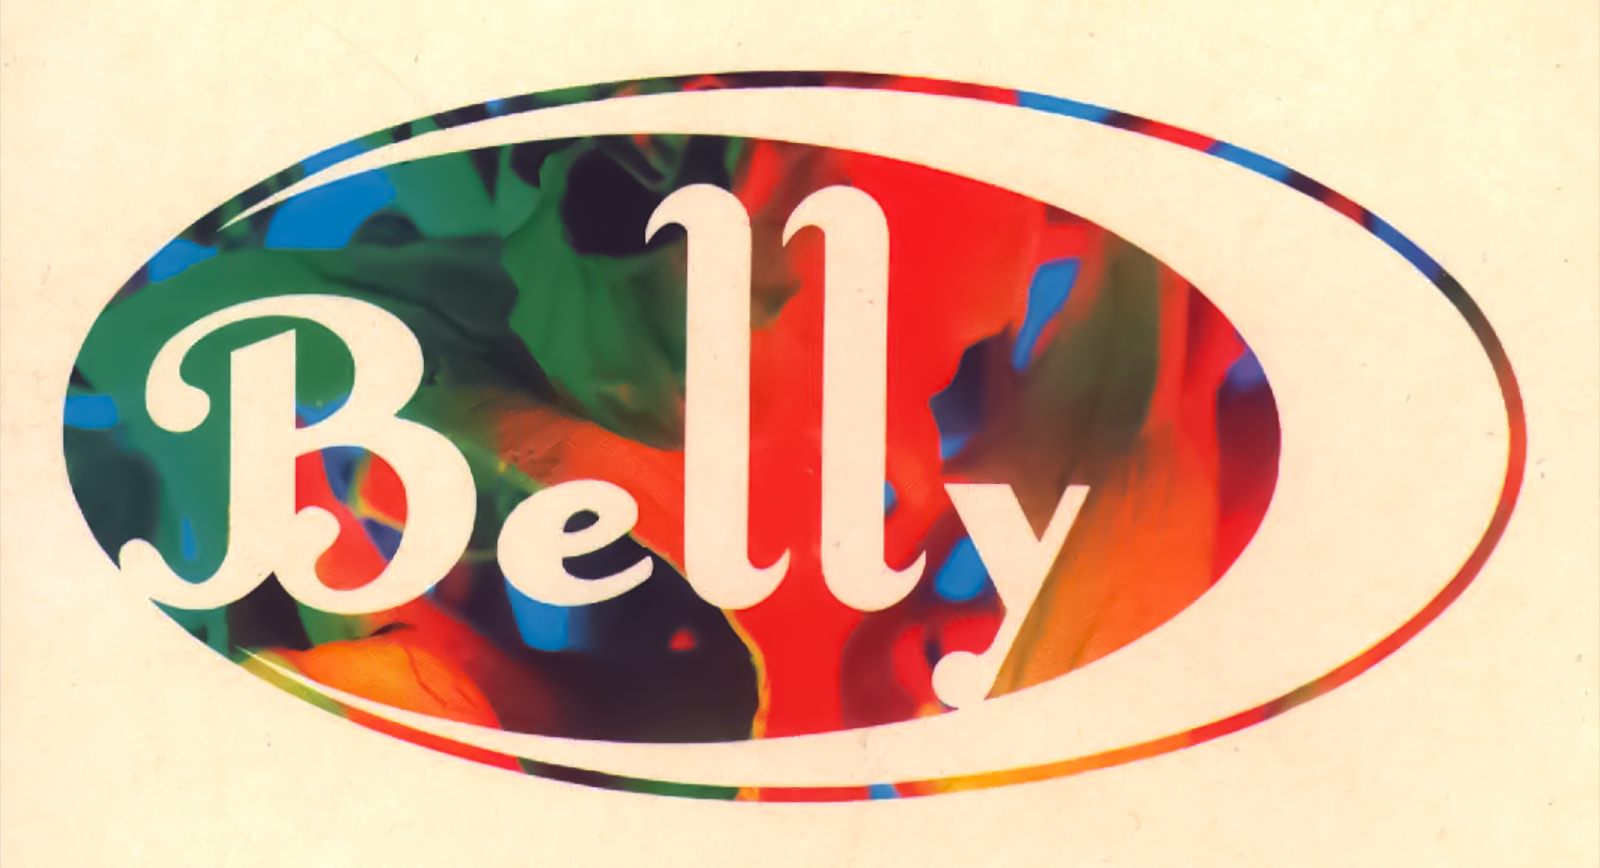 Belly-2016-Tour-Concert-Schedule-Dates-Tickets-Tanya-Donnely-FI